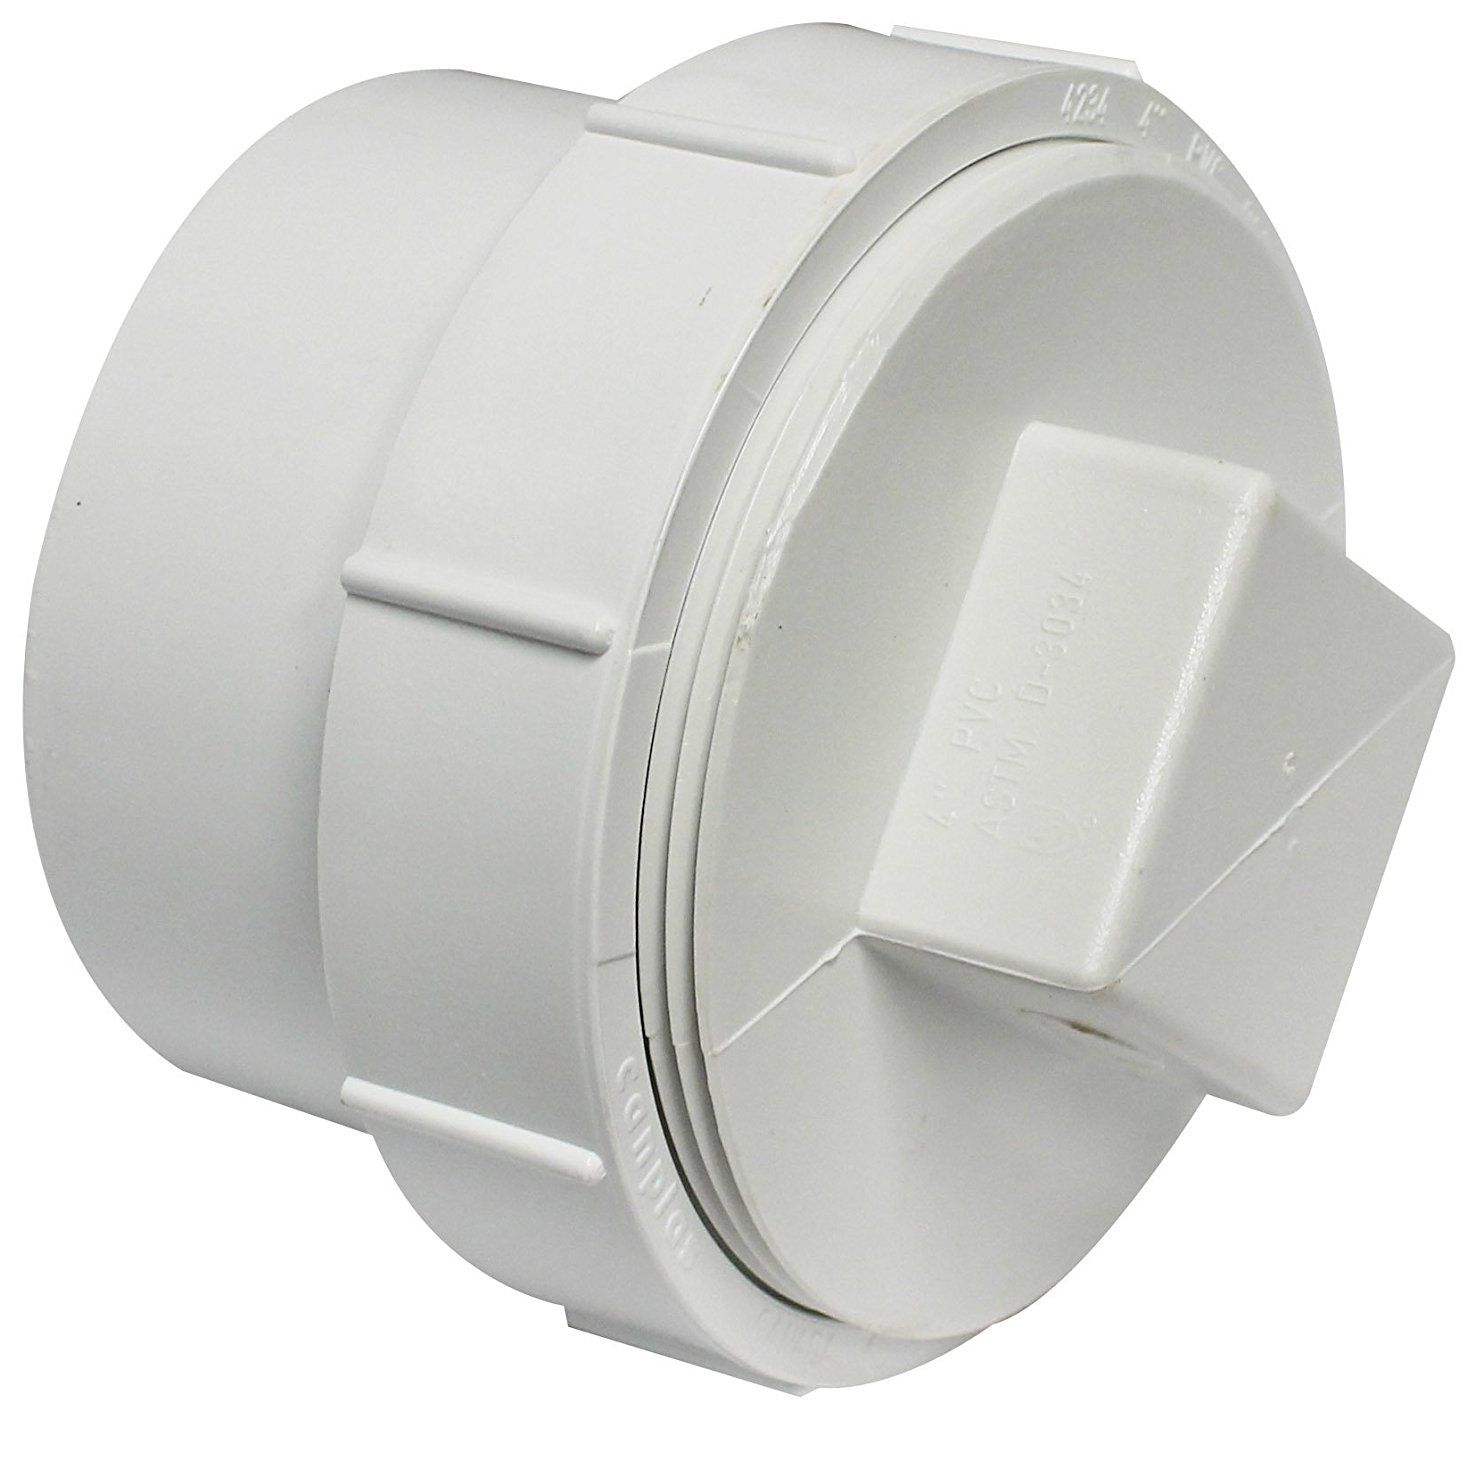 How To Locate Your Main Drain Clean Out Fitting